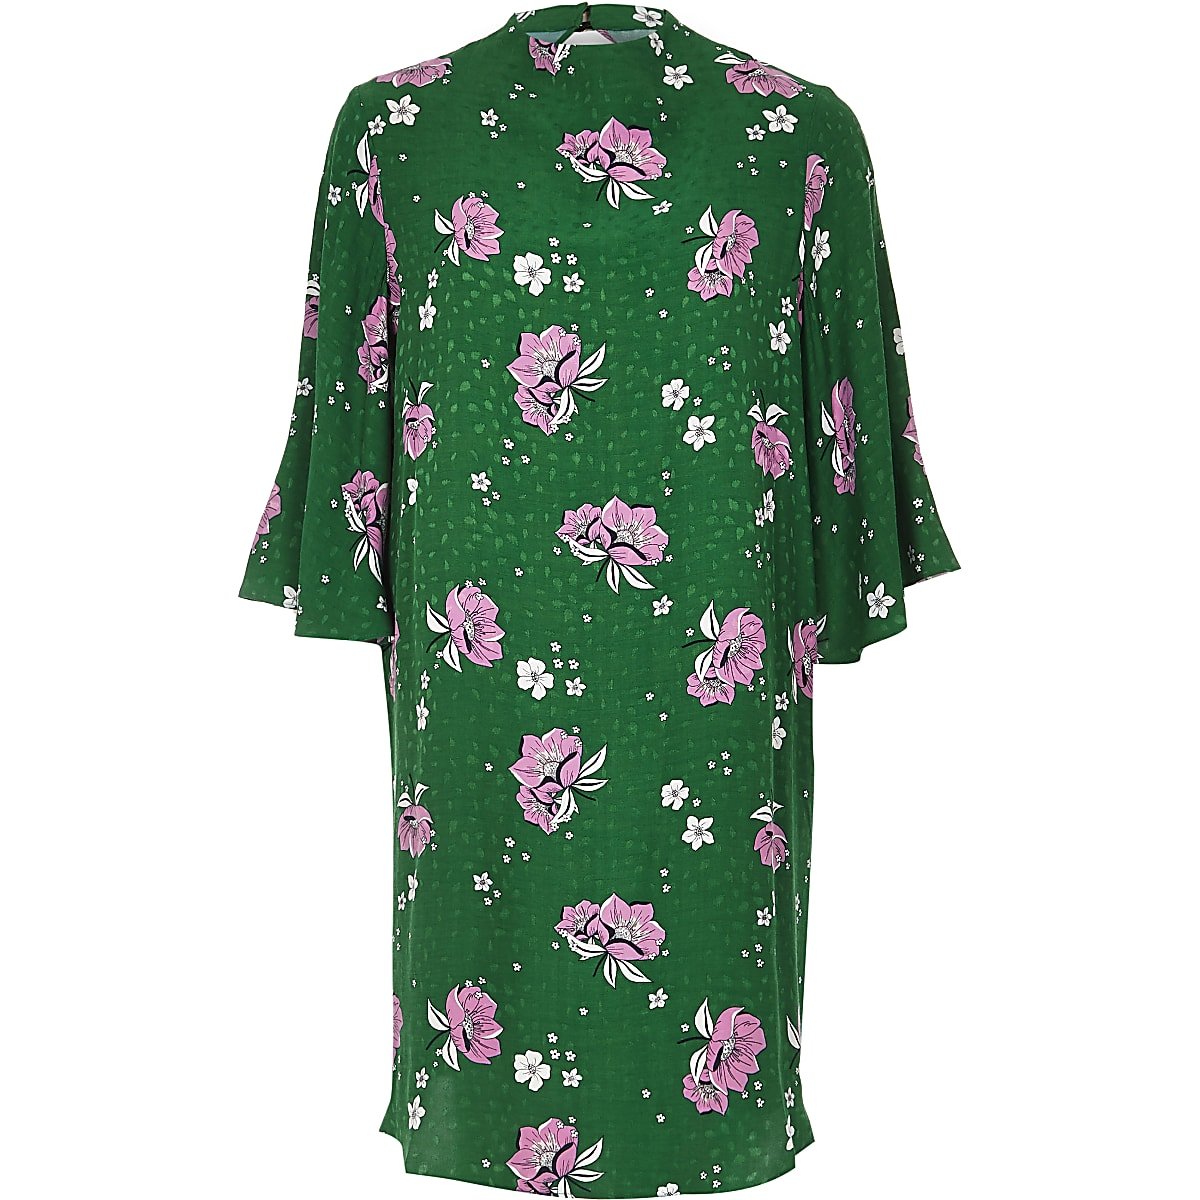 d848db1eae74 Green floral high neck swing dress - Swing Dresses - Dresses - women